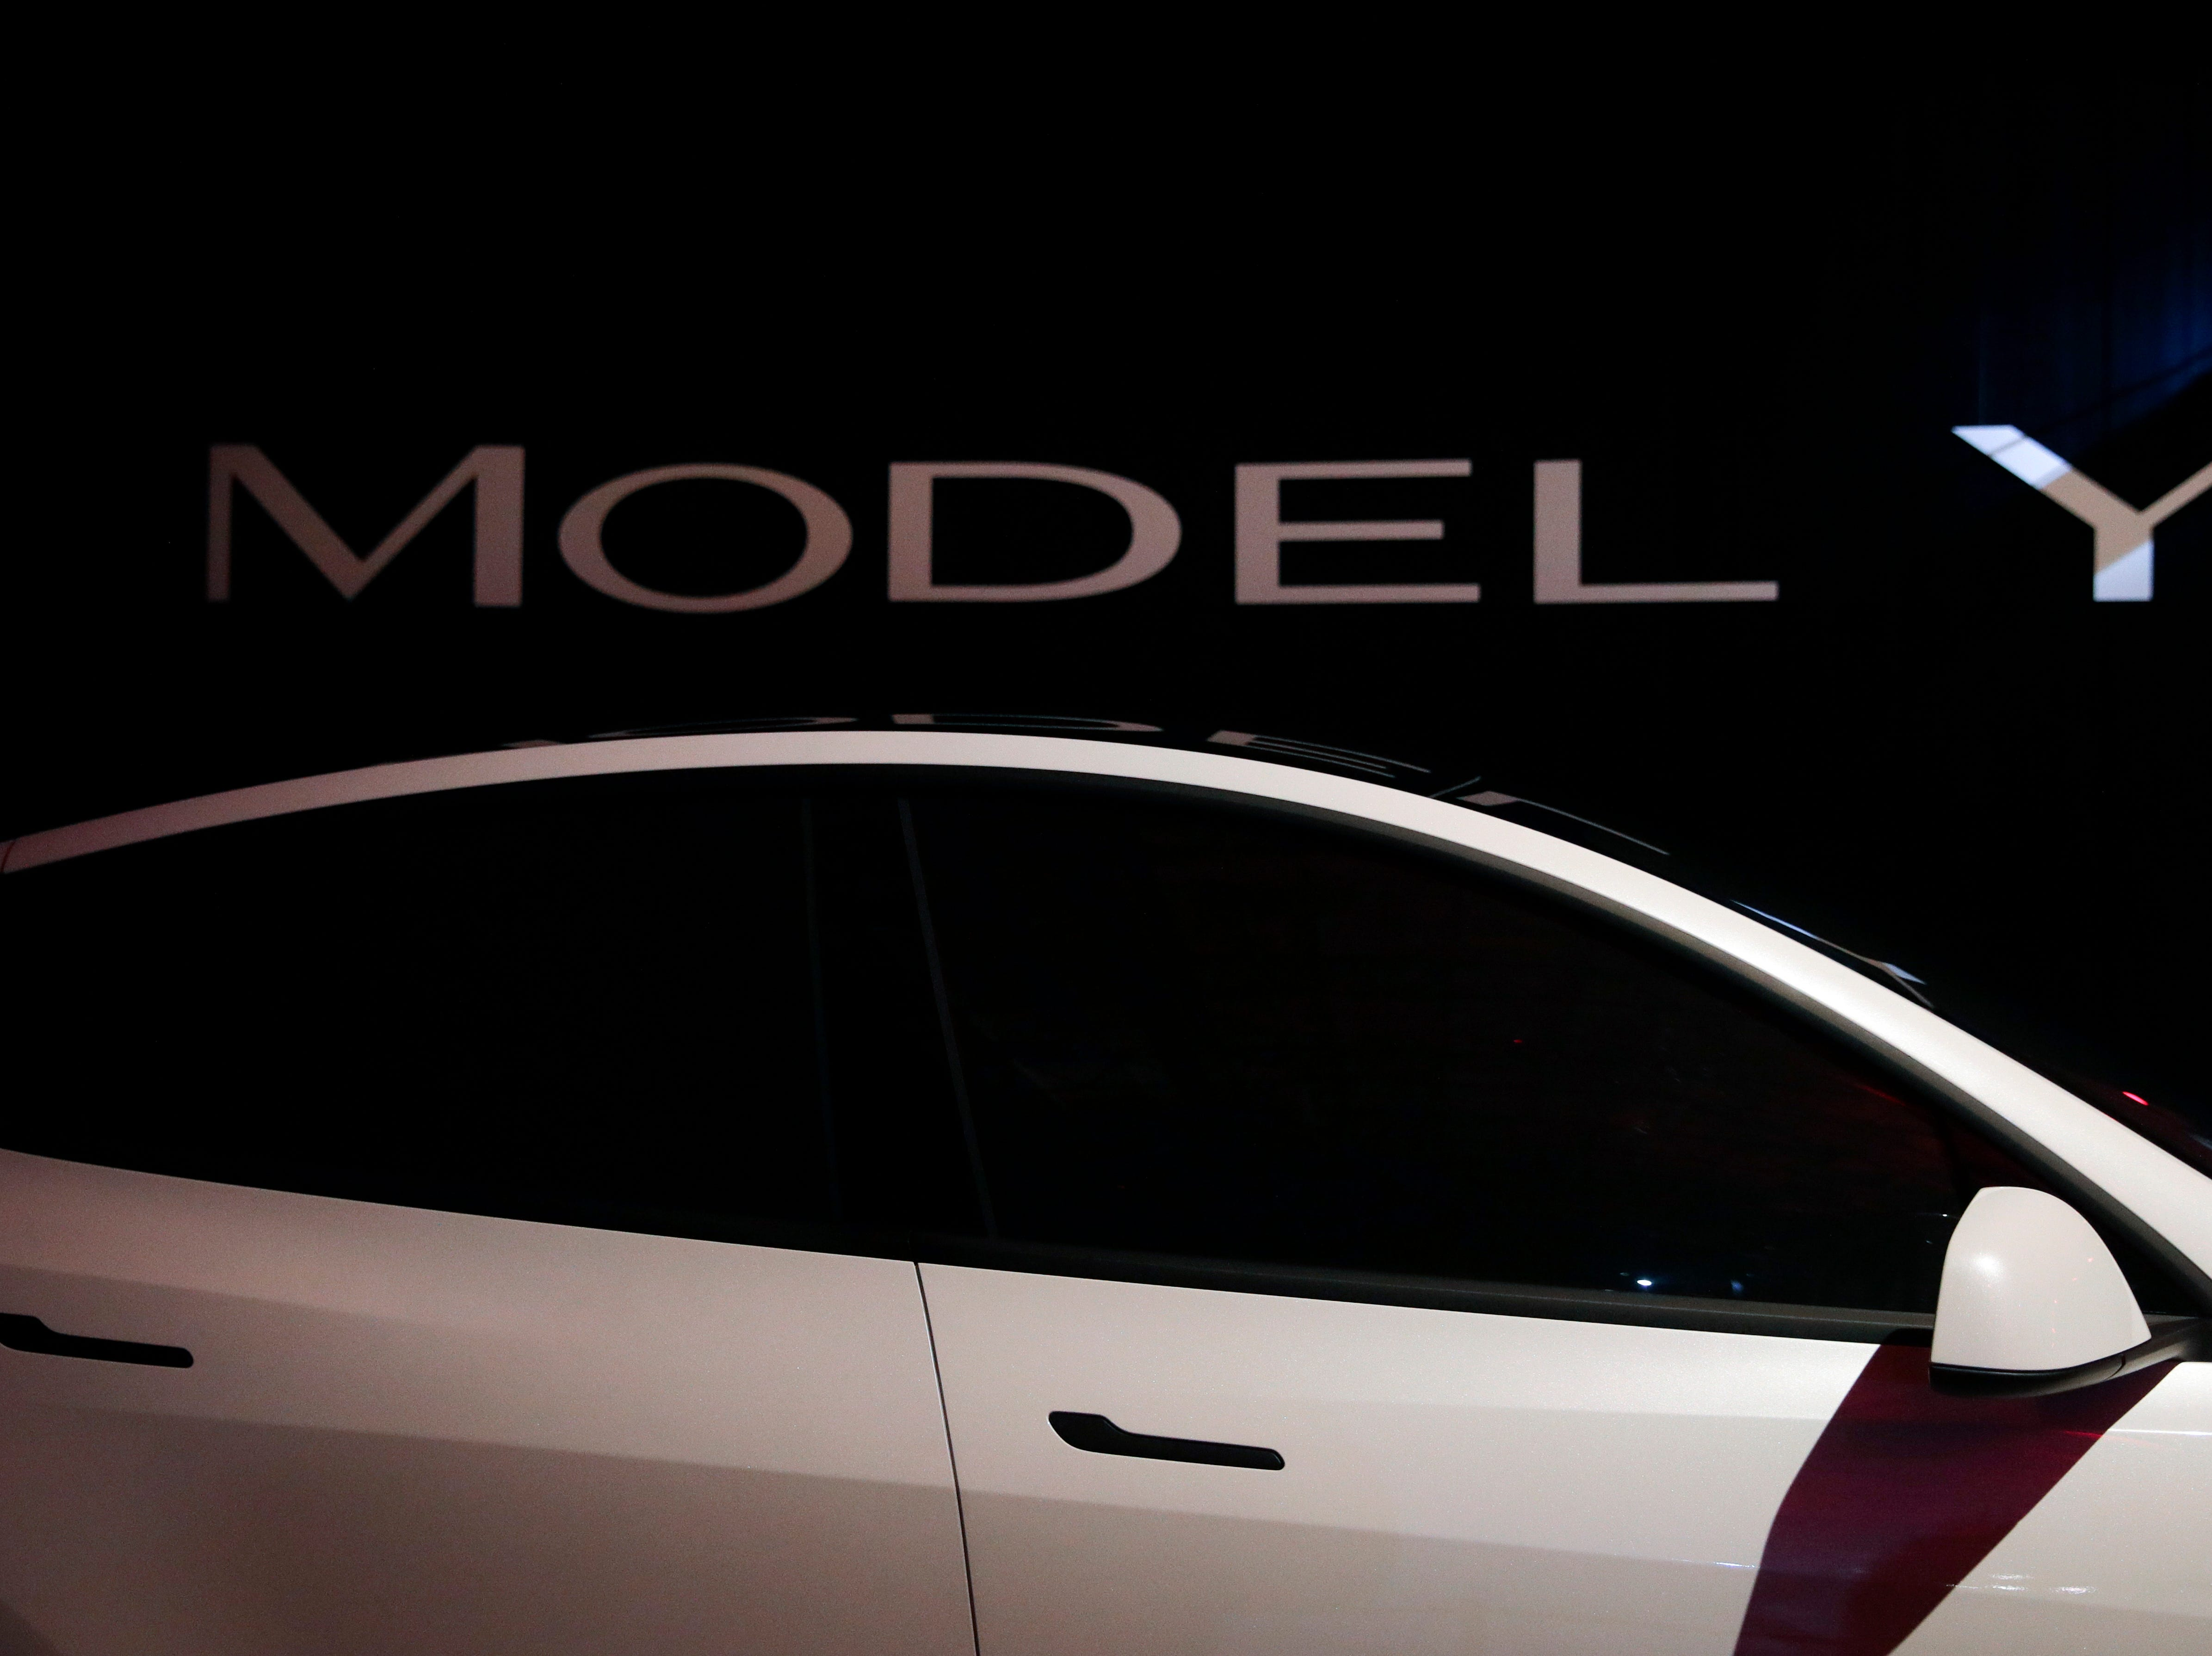 Tesla's Model Y is displayed at Tesla's design studio Thursday, March 14, 2019, in Hawthorne, Calif. The Model Y may be Tesla's most important product yet as it attempts to expand into the mainstream and generate enough cash to repay massive debts that threaten to topple the Palo Alto, Calif., company. (AP Photo/Jae C. Hong)